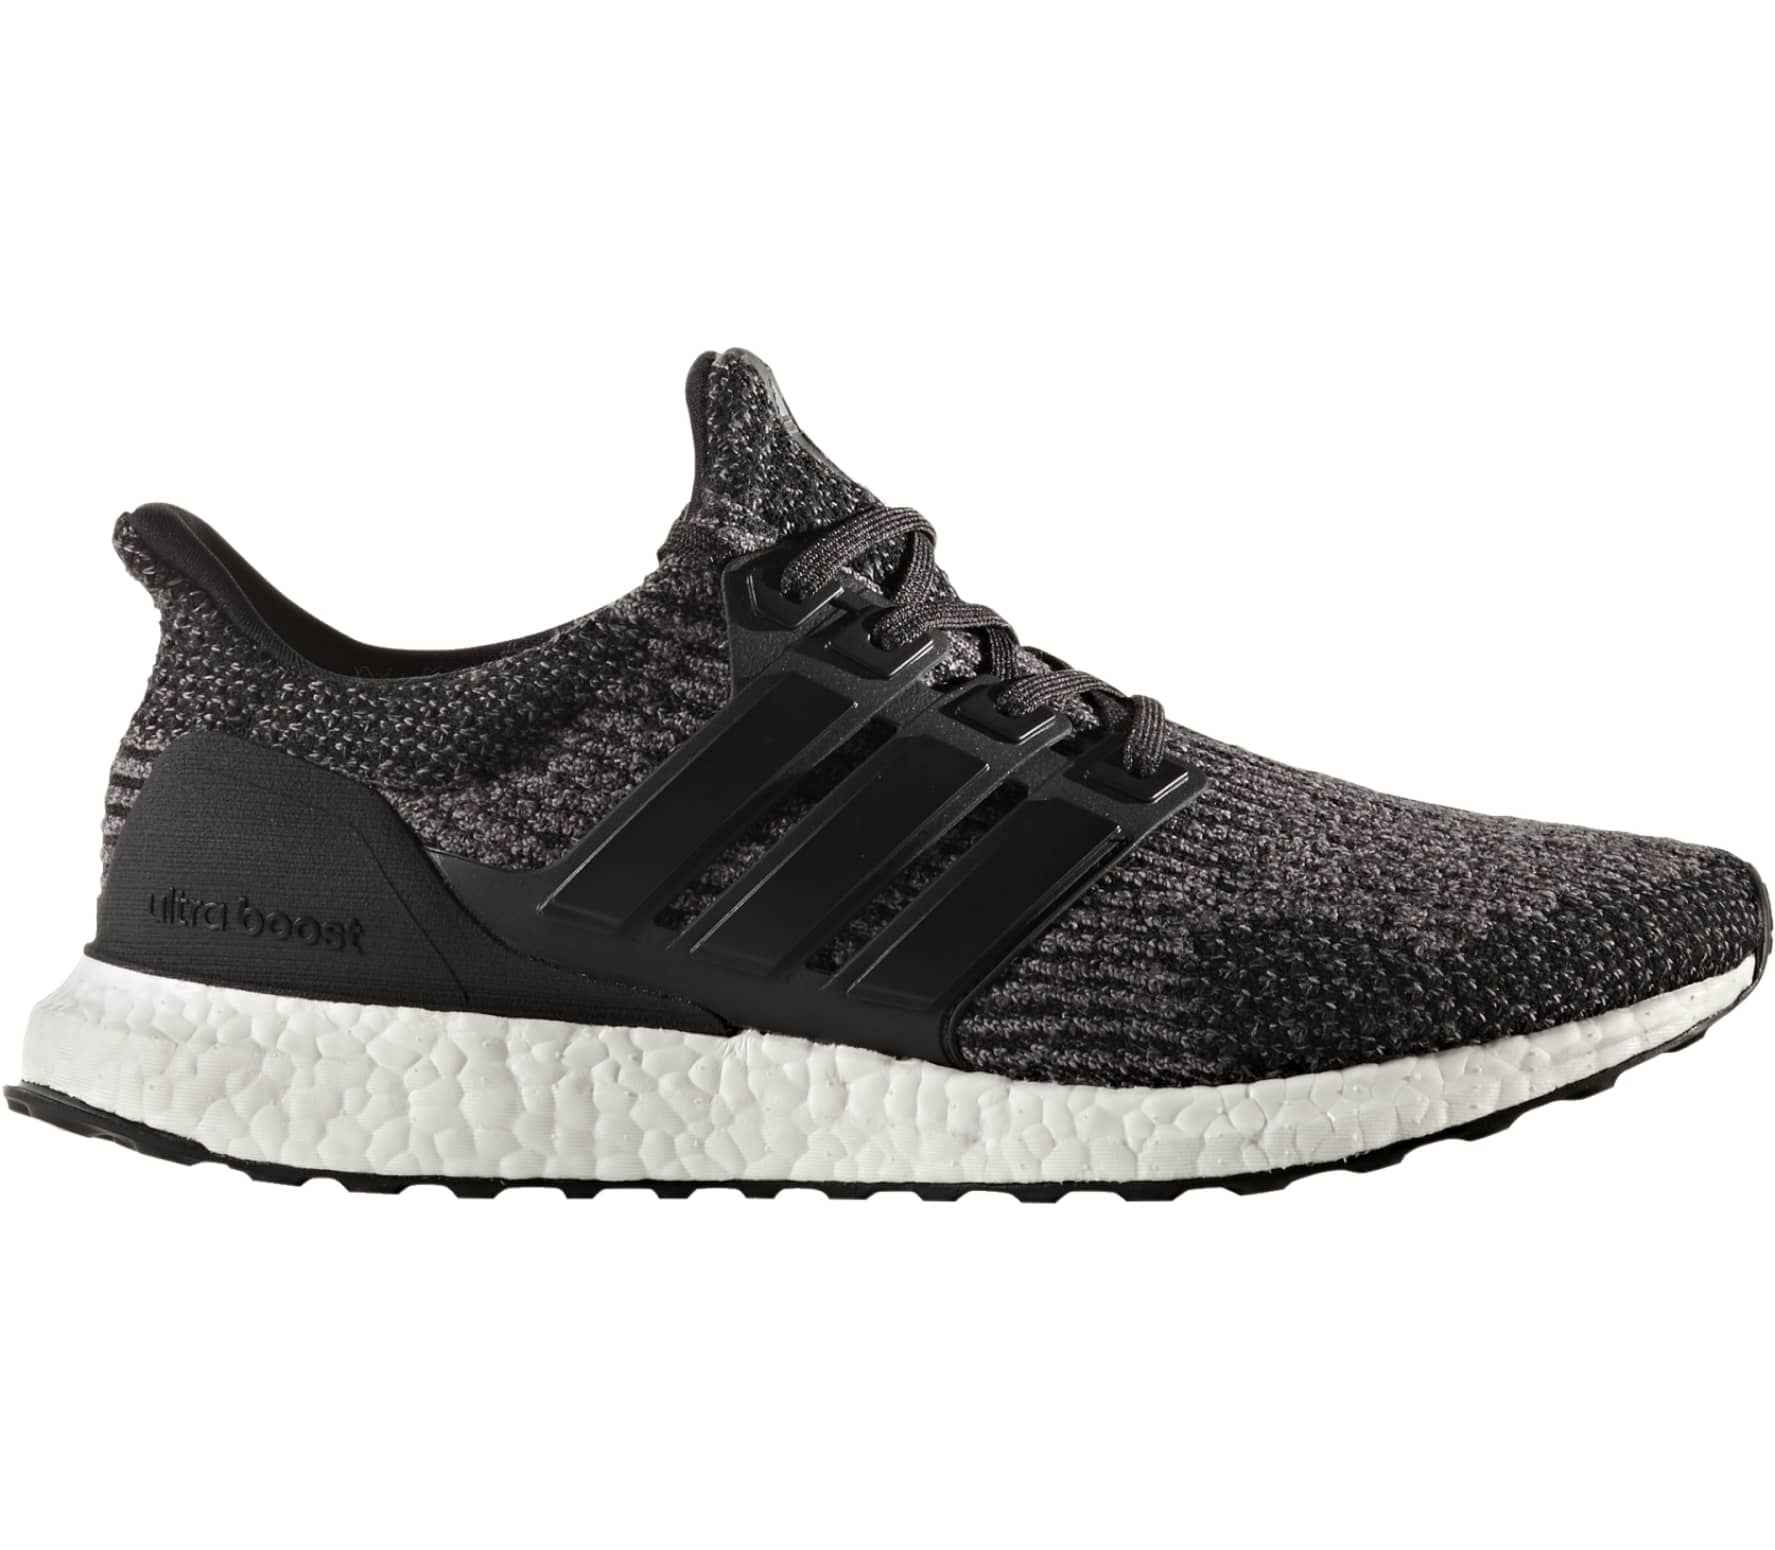 Adidas - Ultra Boost men's running shoes (black/white